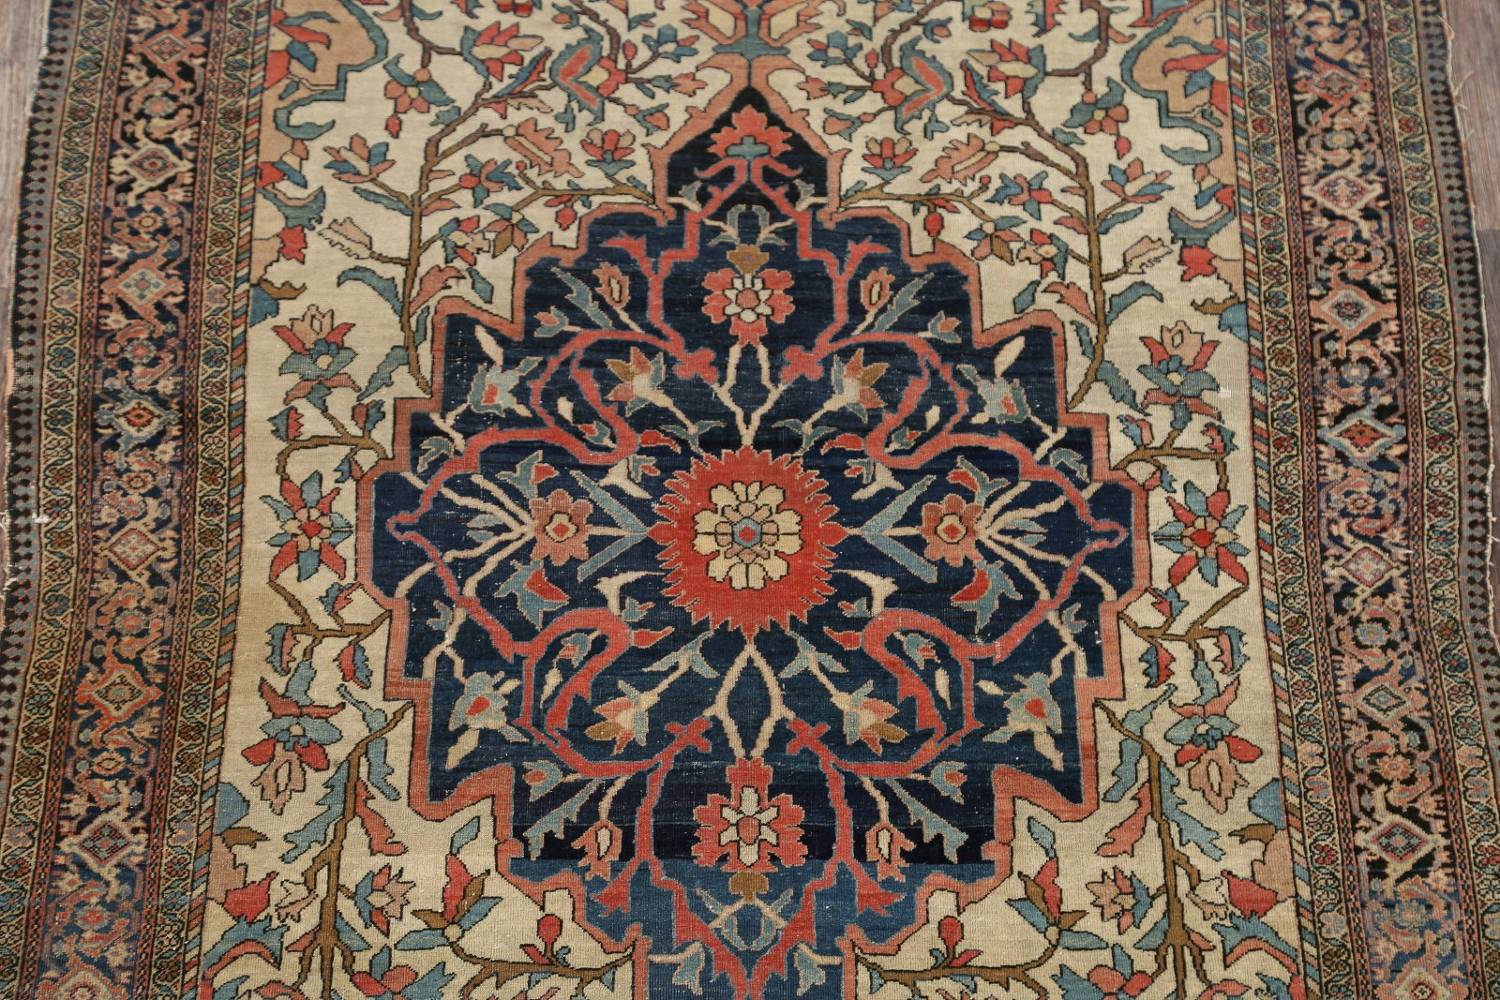 Pre-1900 Antique Floral Sarouk Farahan Persian Hand-Knotted 4'x7' Wool Area Rug image 4